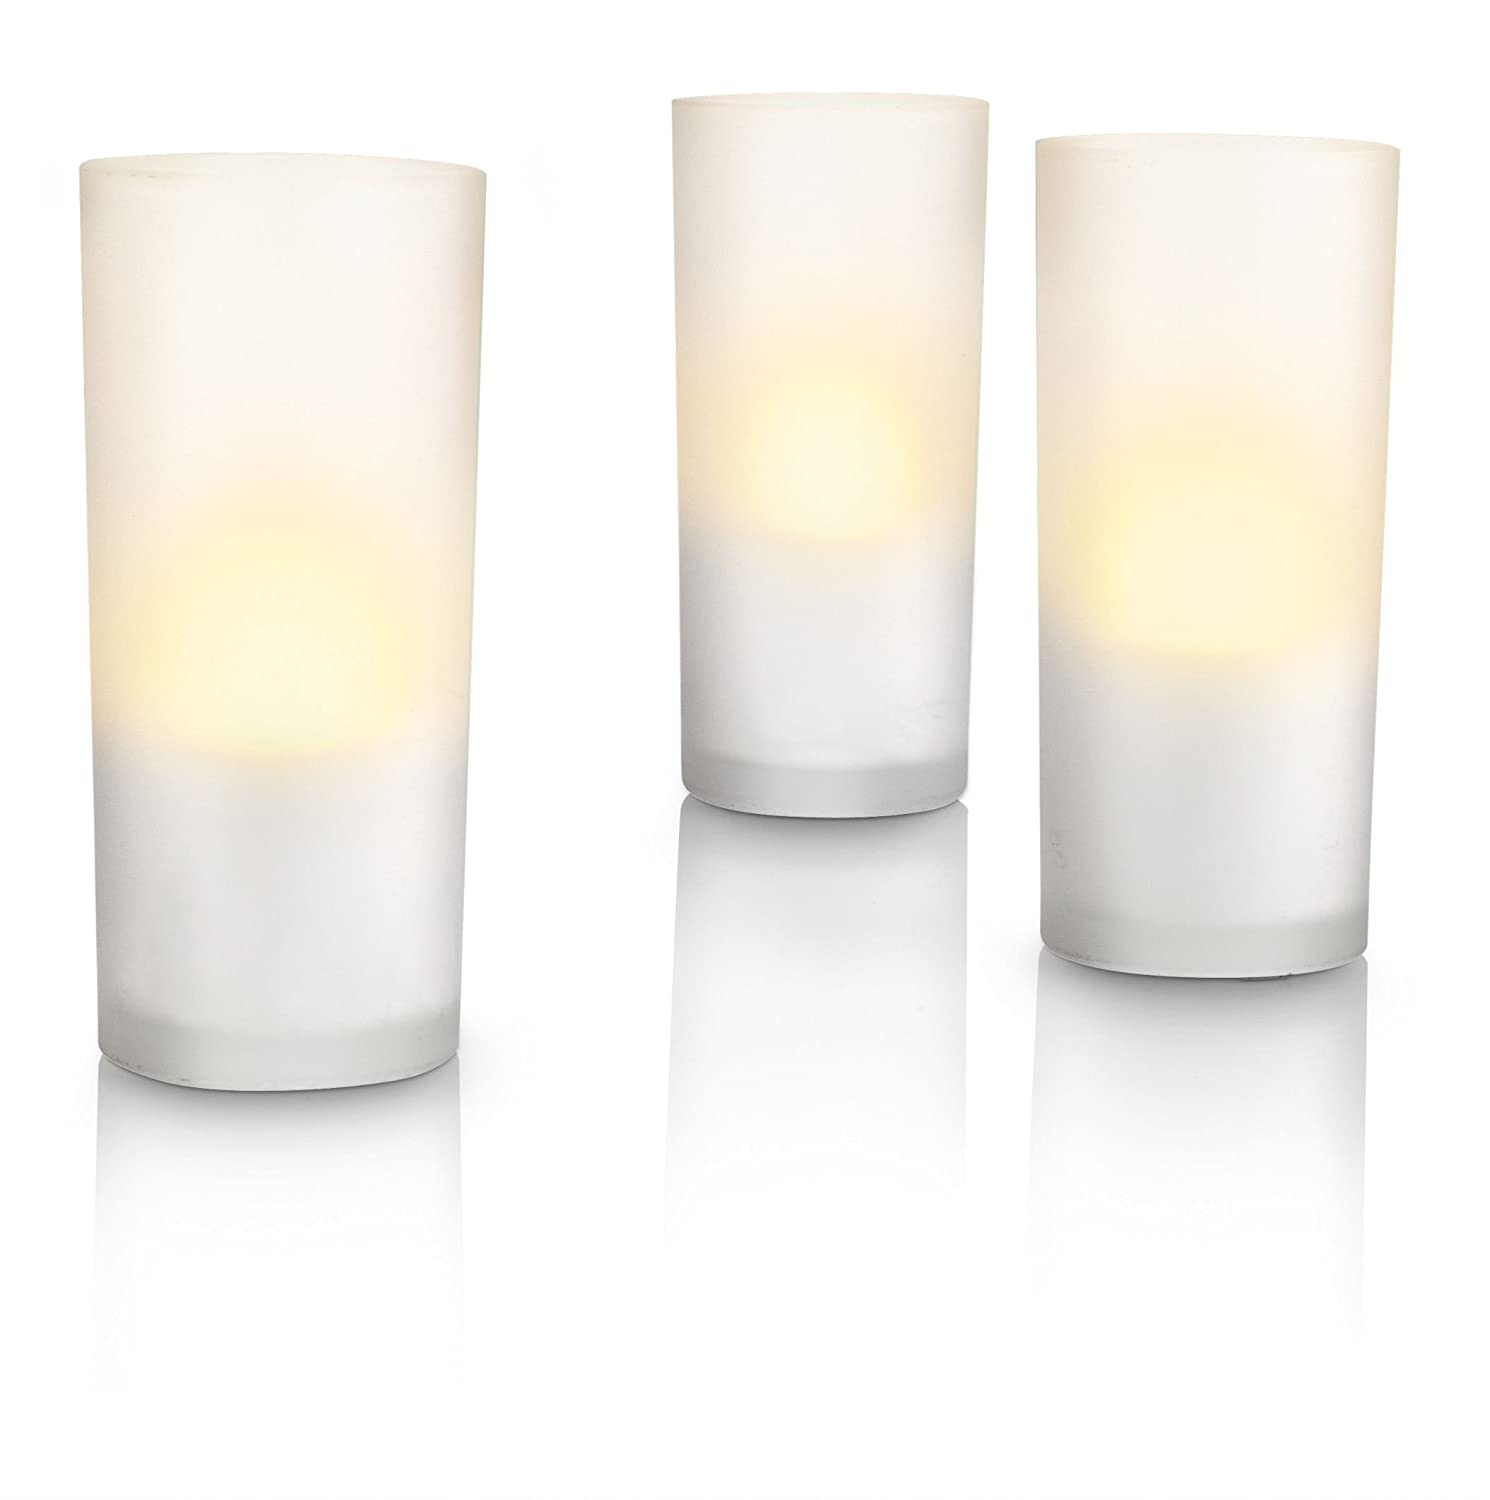 inklusive Leuchtmittel PHILIPS myLightAccent 3-flammig 6910860PH CandleLights CandleLightsWhite 3 set mit 6W